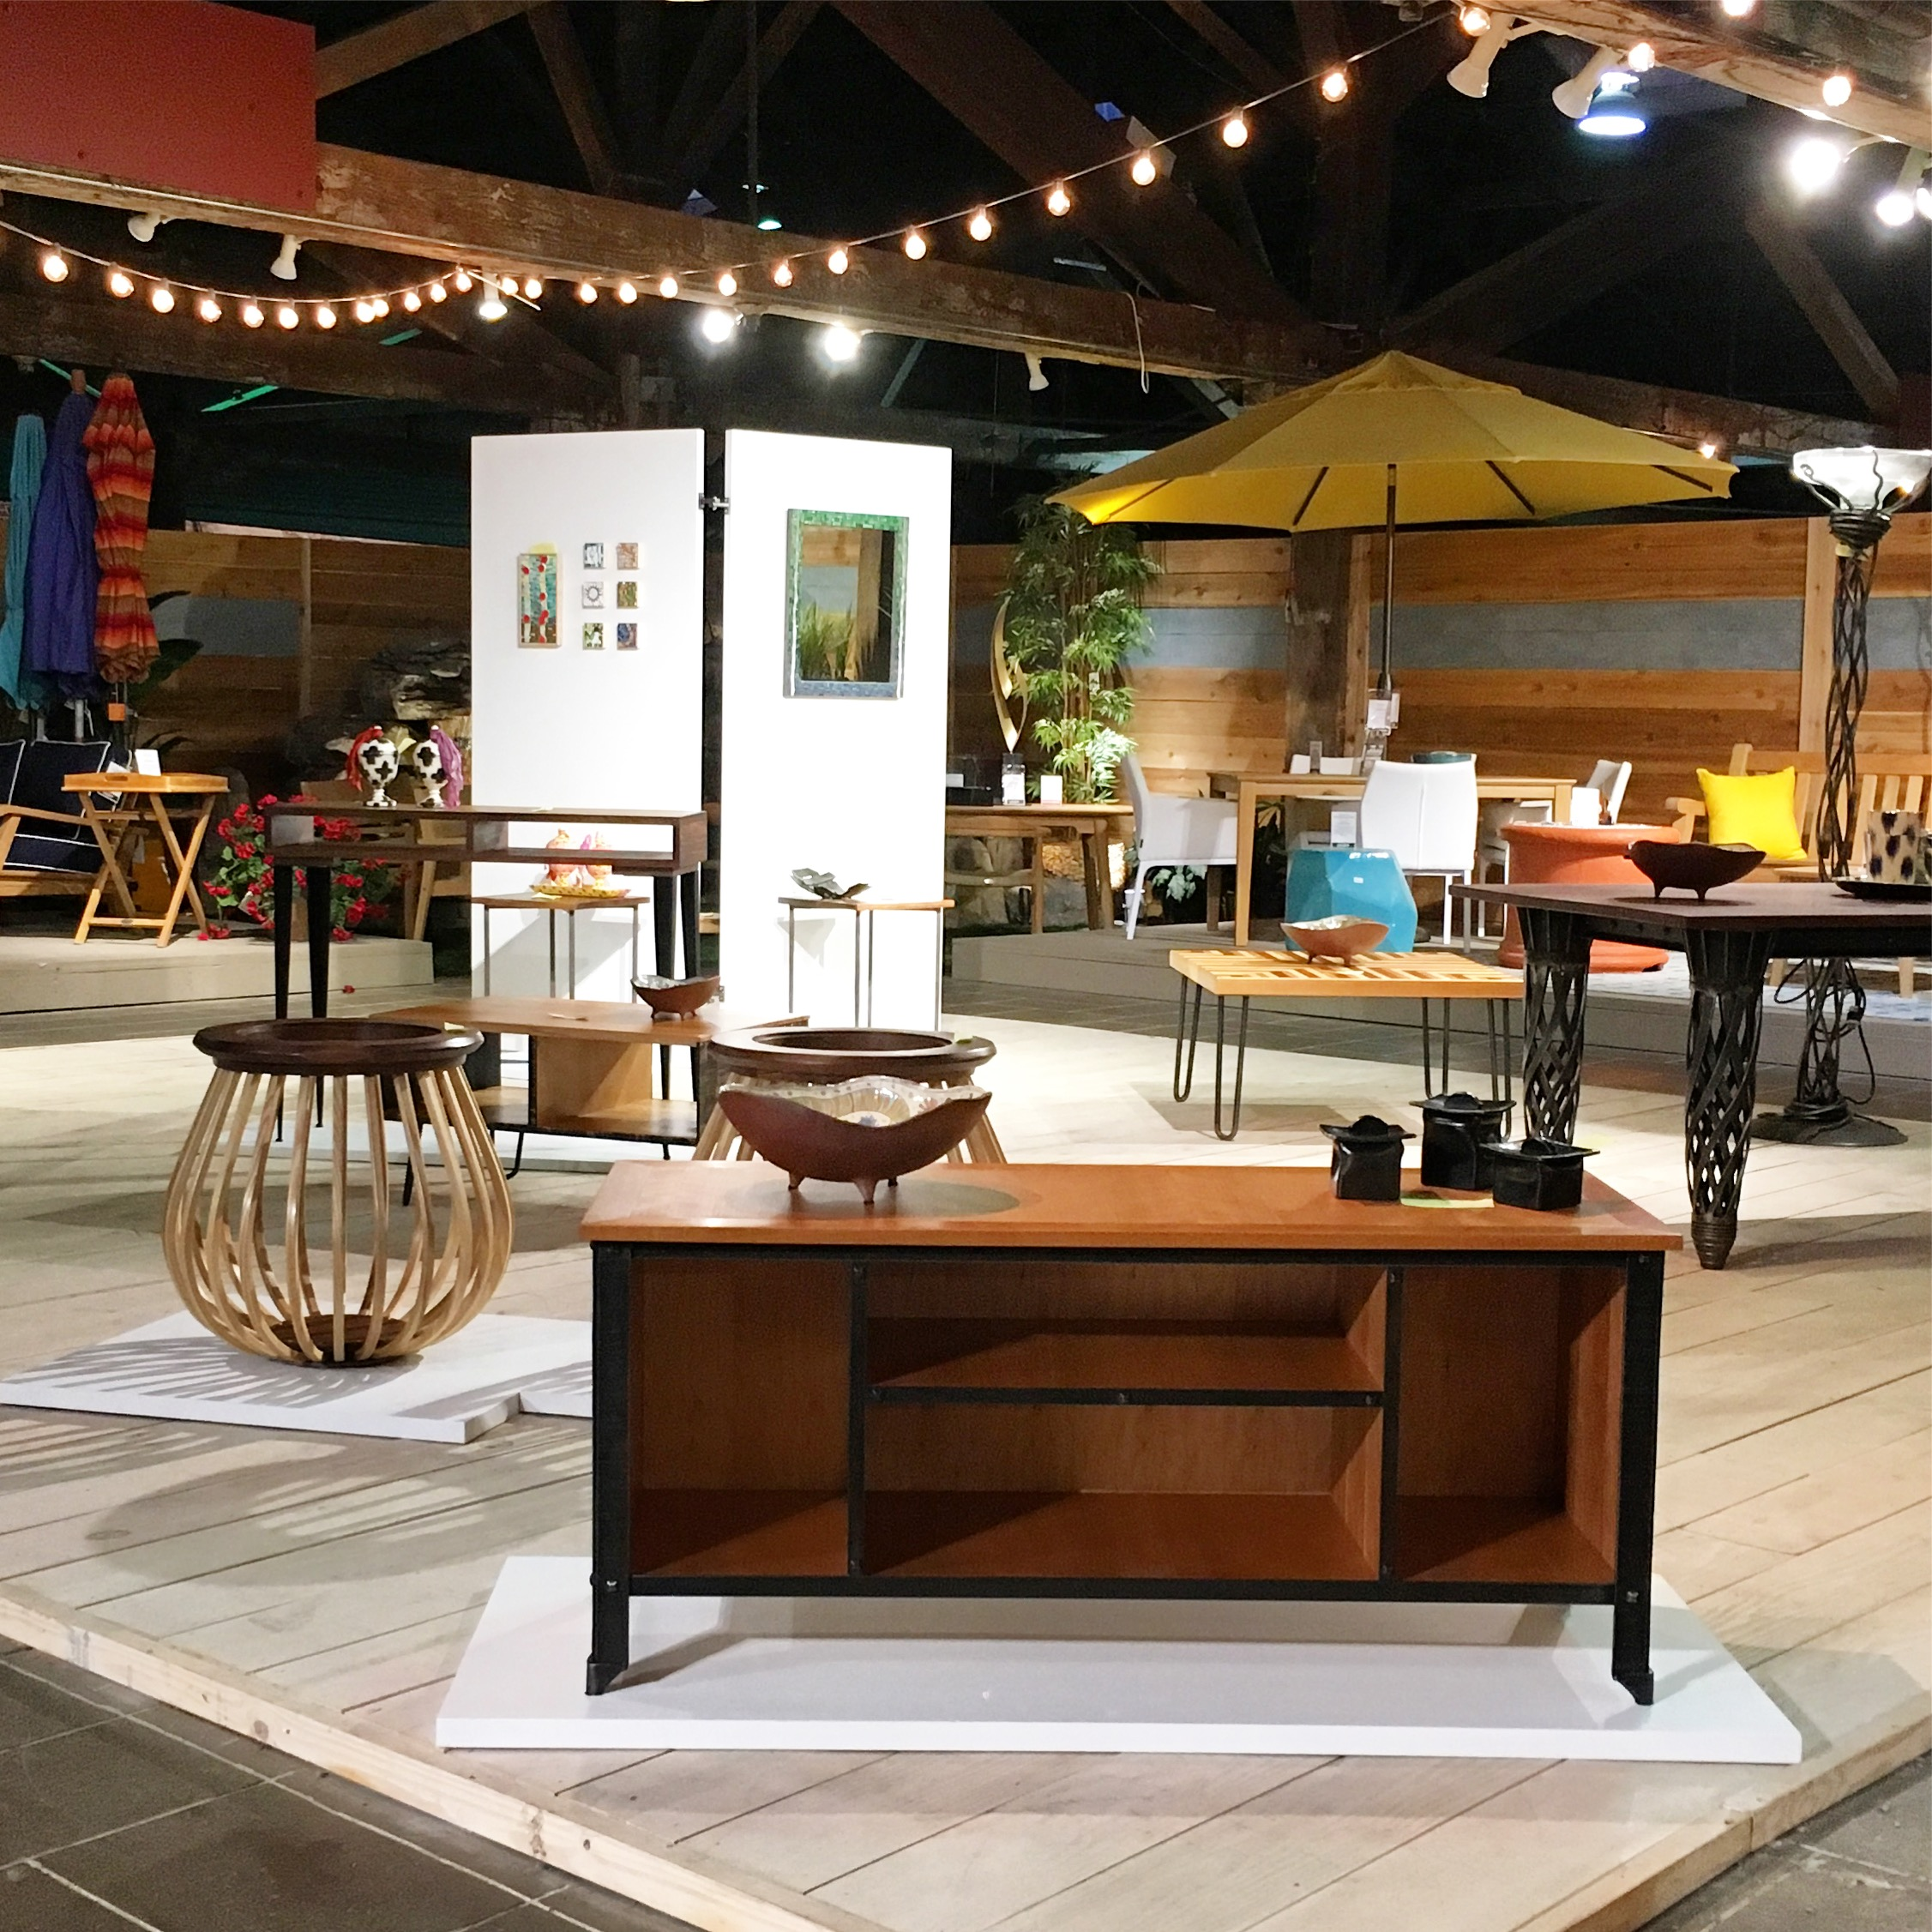 We worked with La Diff owners Sarah Paxton and Andy Thornton and David Bohnhoff of Bohnhoff Furniture and Design to organize Made in RVA, a month-long show featuring the work of local furniture makers and designers.